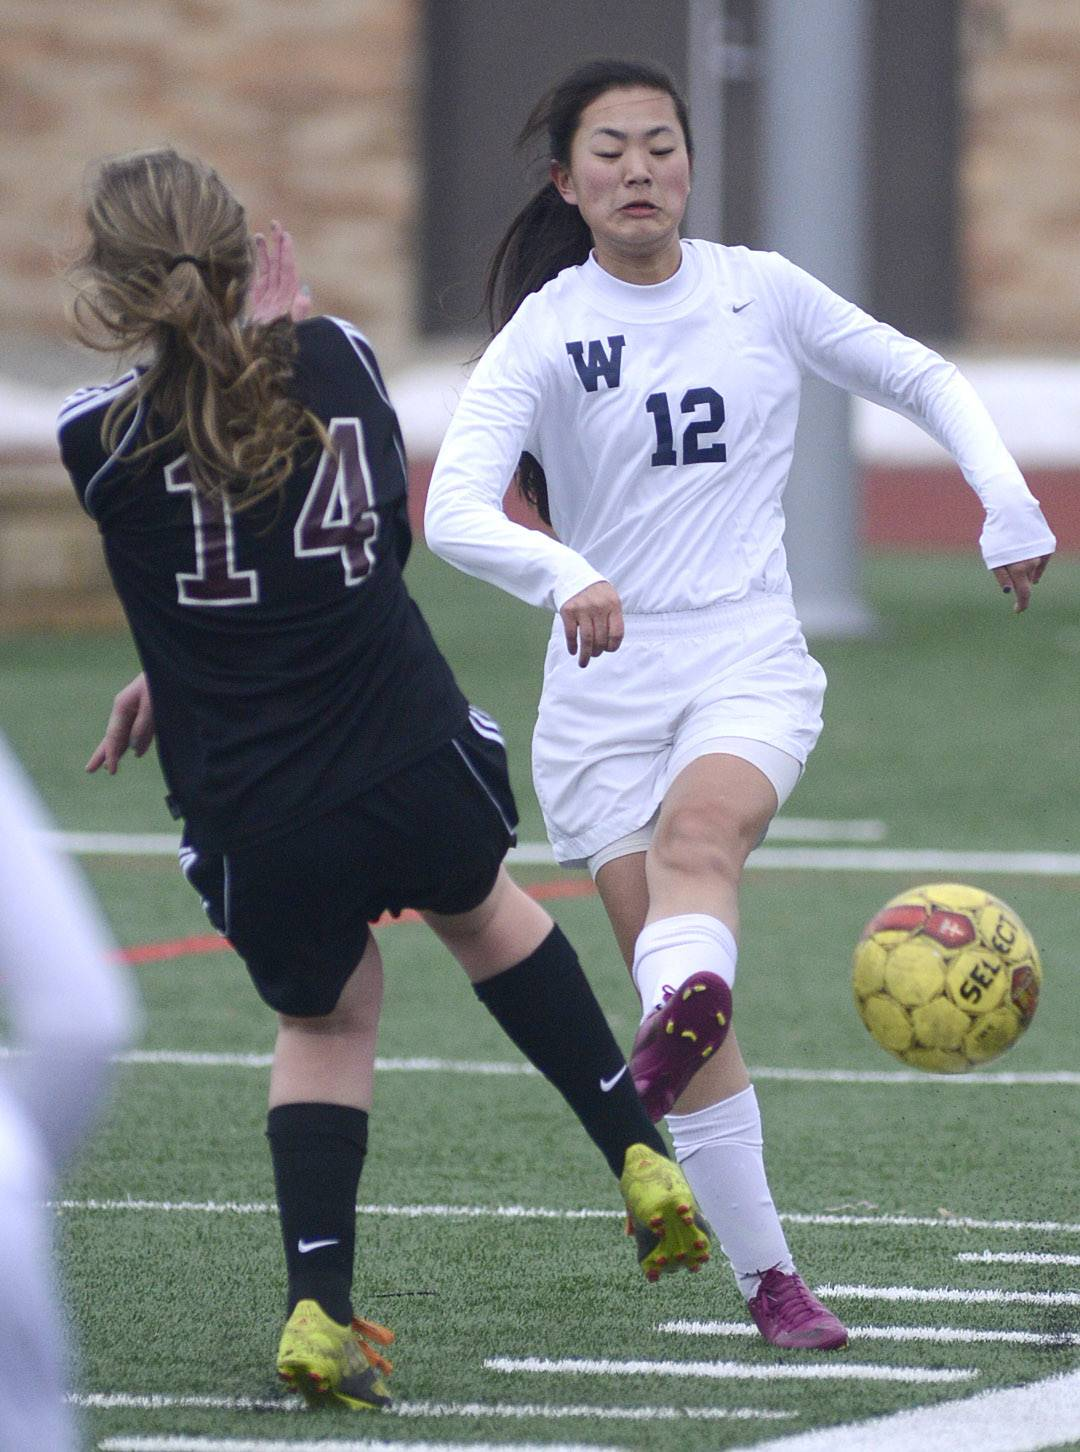 West Aurora's Carli Hix drives the ball past Wheaton Academy's Kate Lindsay in the first half on Wednesday, March 19.